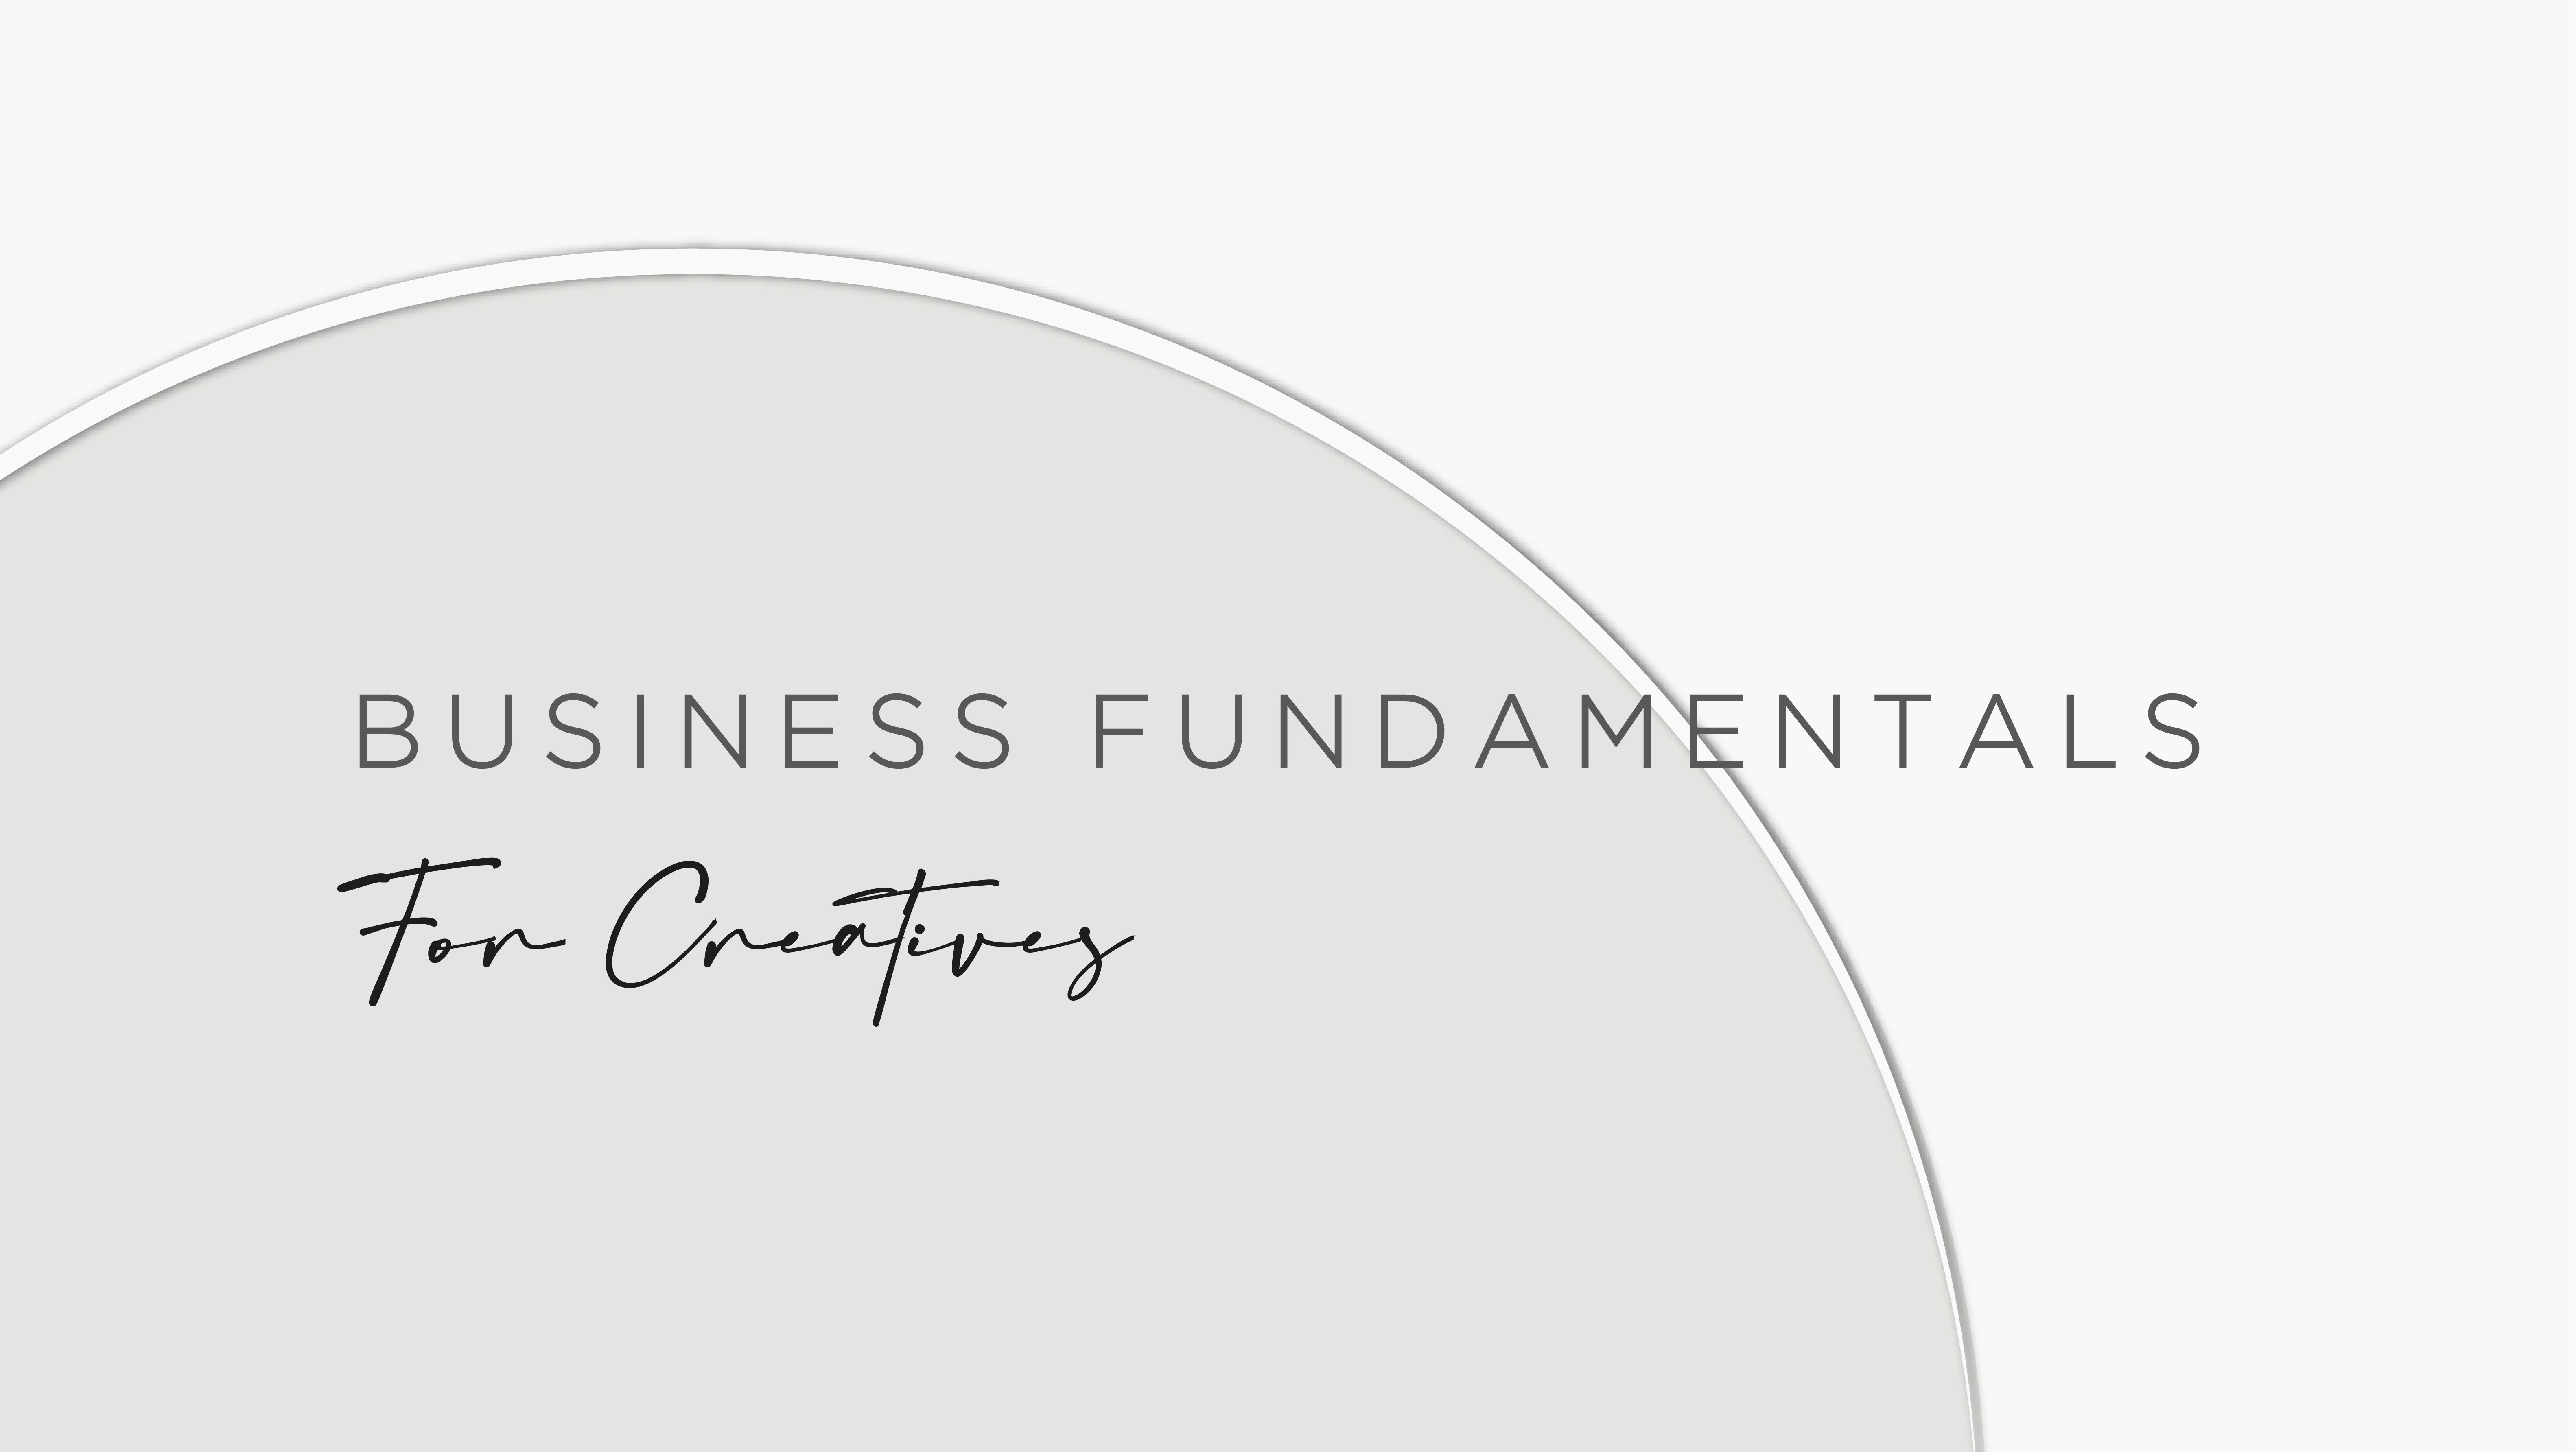 Business Fundamentals For Creatives